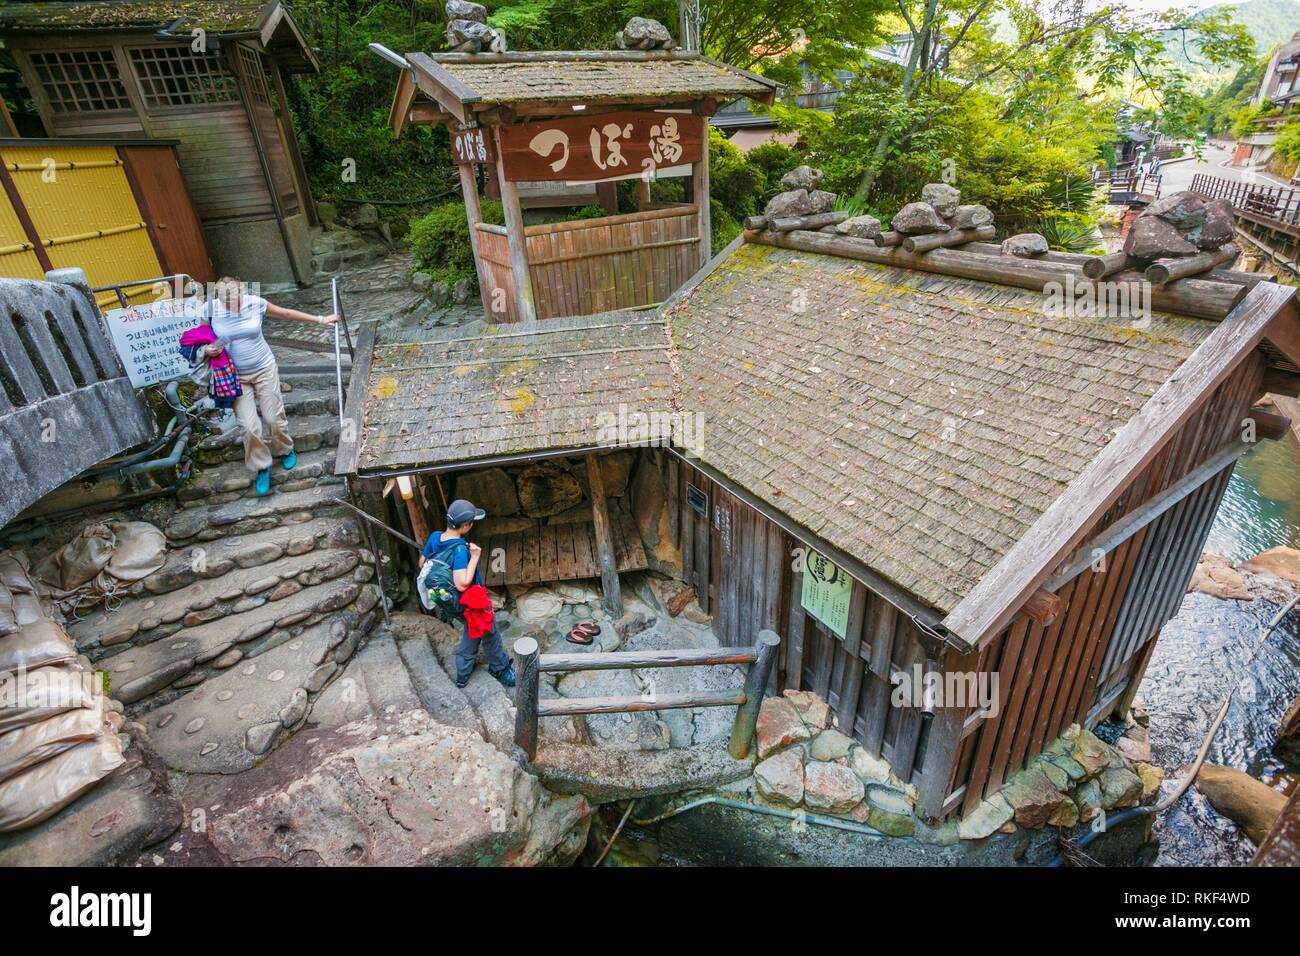 Kumano Kodo pilgrimage route. Tsuboyu is a small bath in the creek enclosed by a rustic wood cabin. Yunomine Onsen village. Hot spring village. - Stock Image